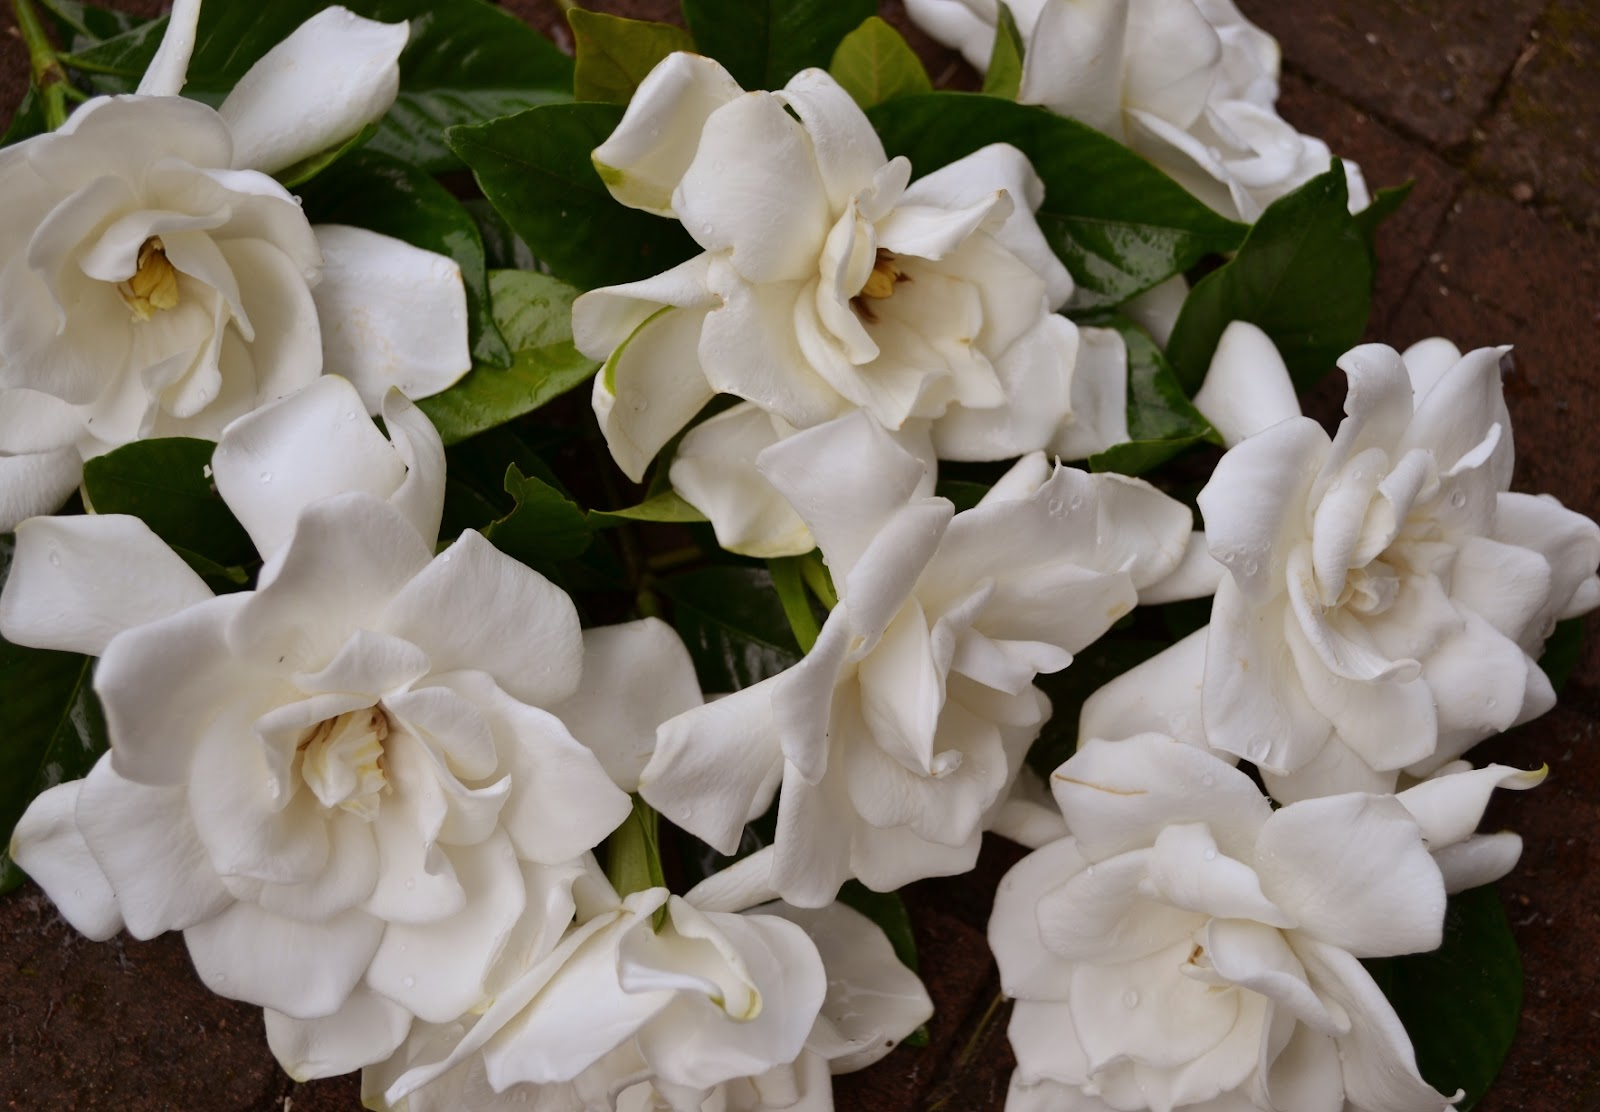 wedding flowers from springwell gardenias for white bouquets, Beautiful flower